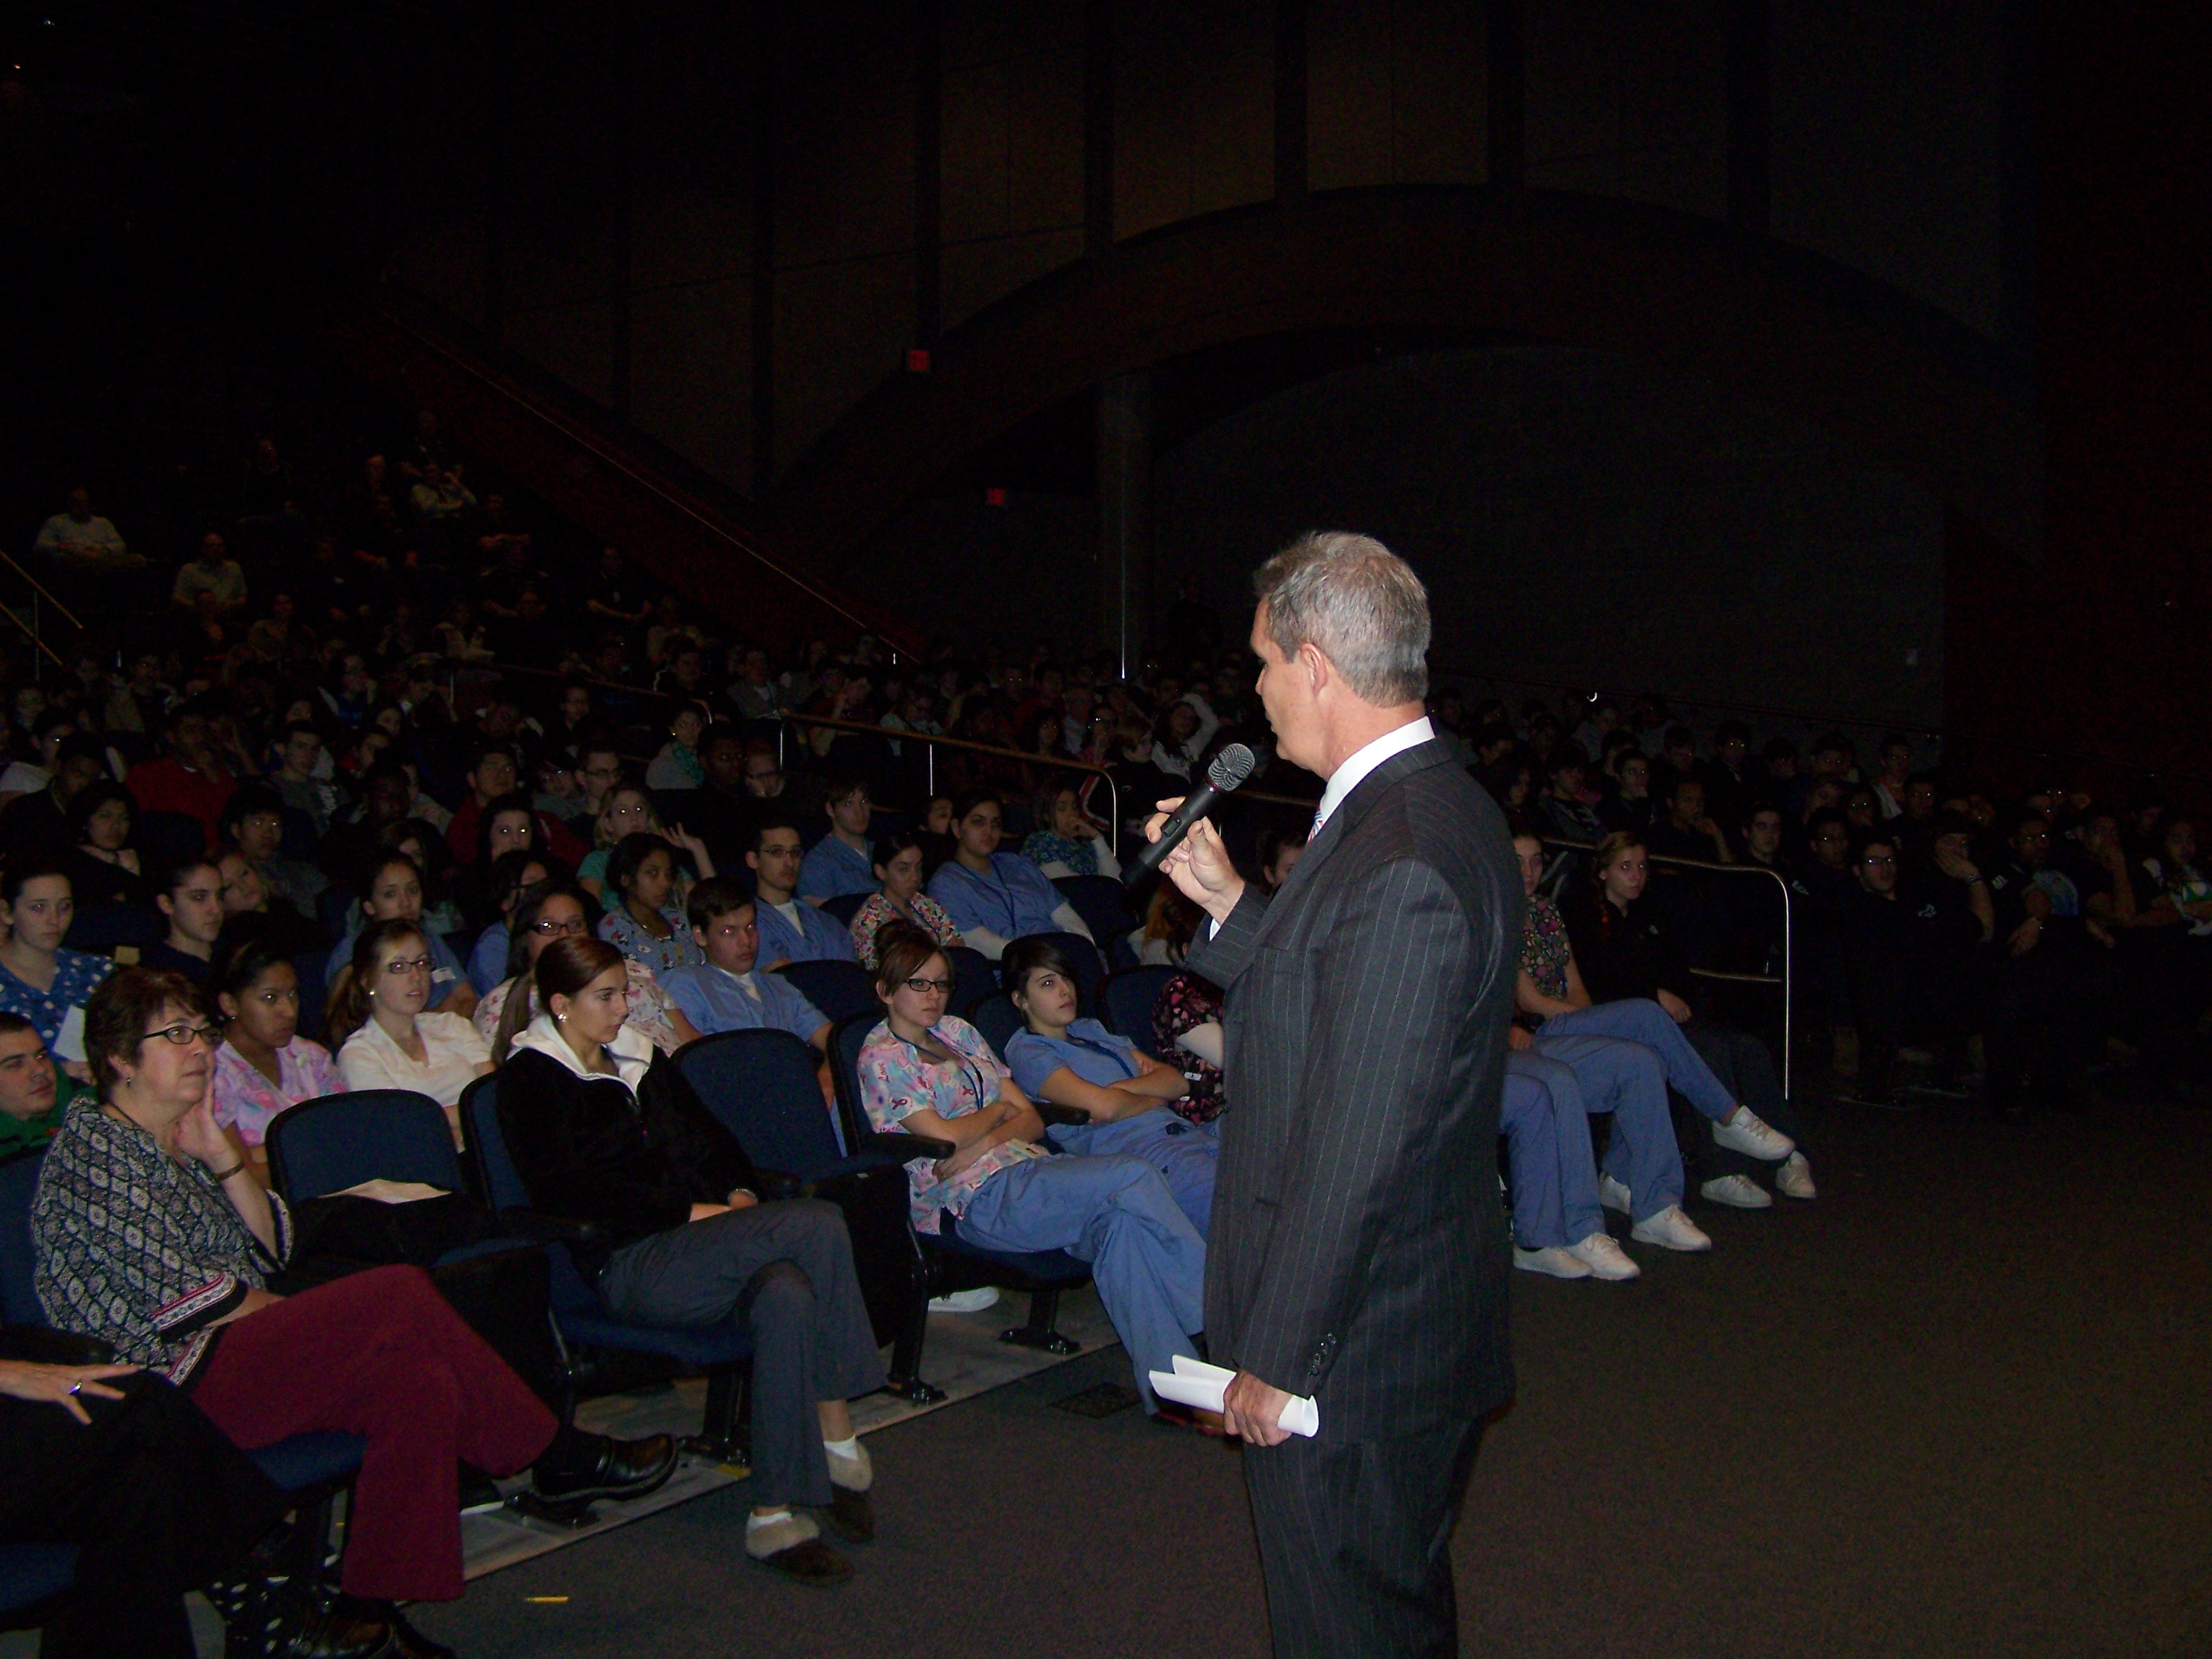 DA Early talked to Worc. Tech students about distracted driving